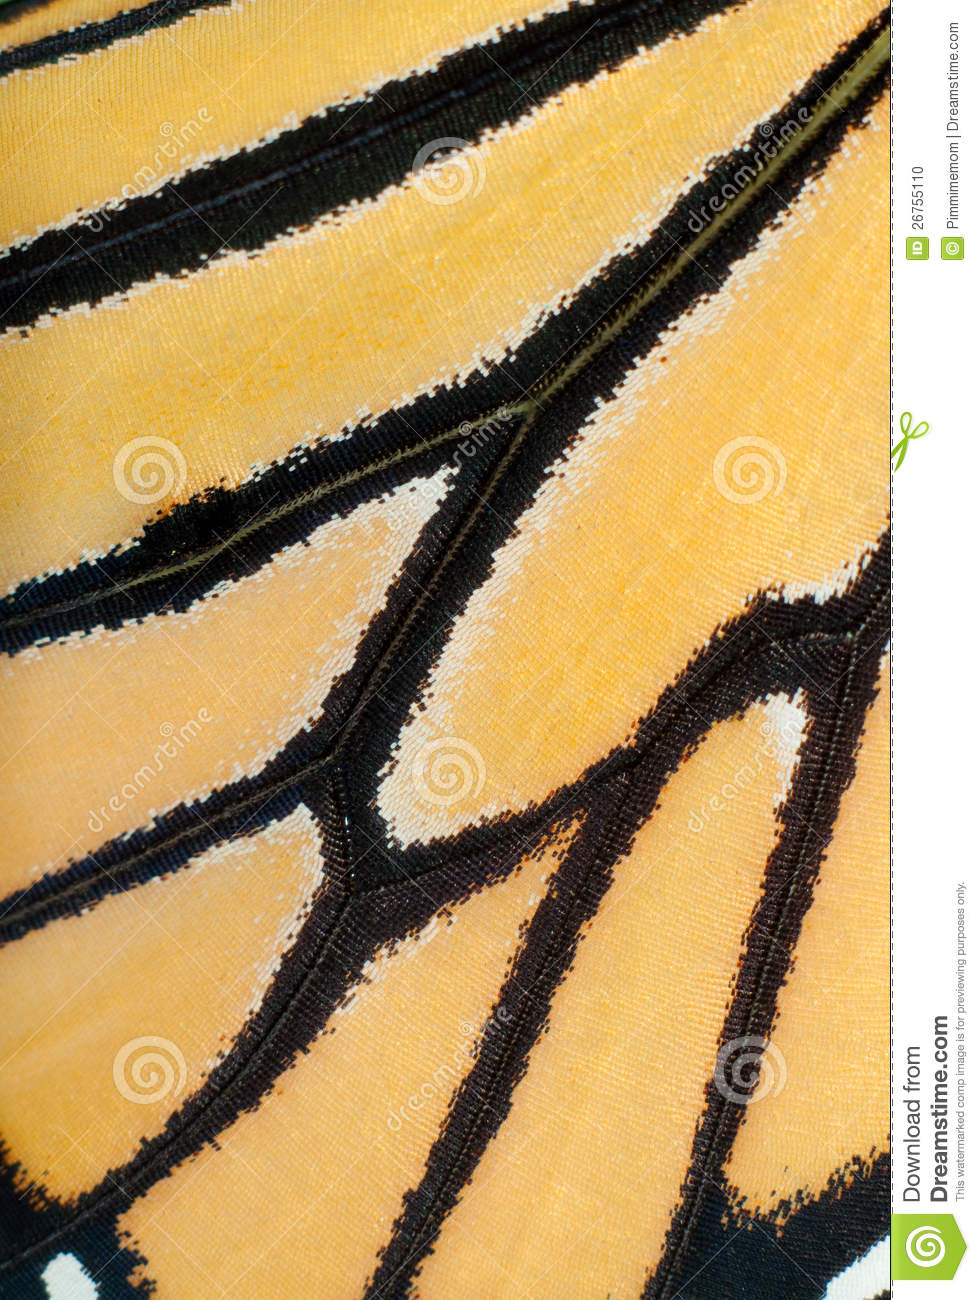 Image of a live Monarch butterfly wing